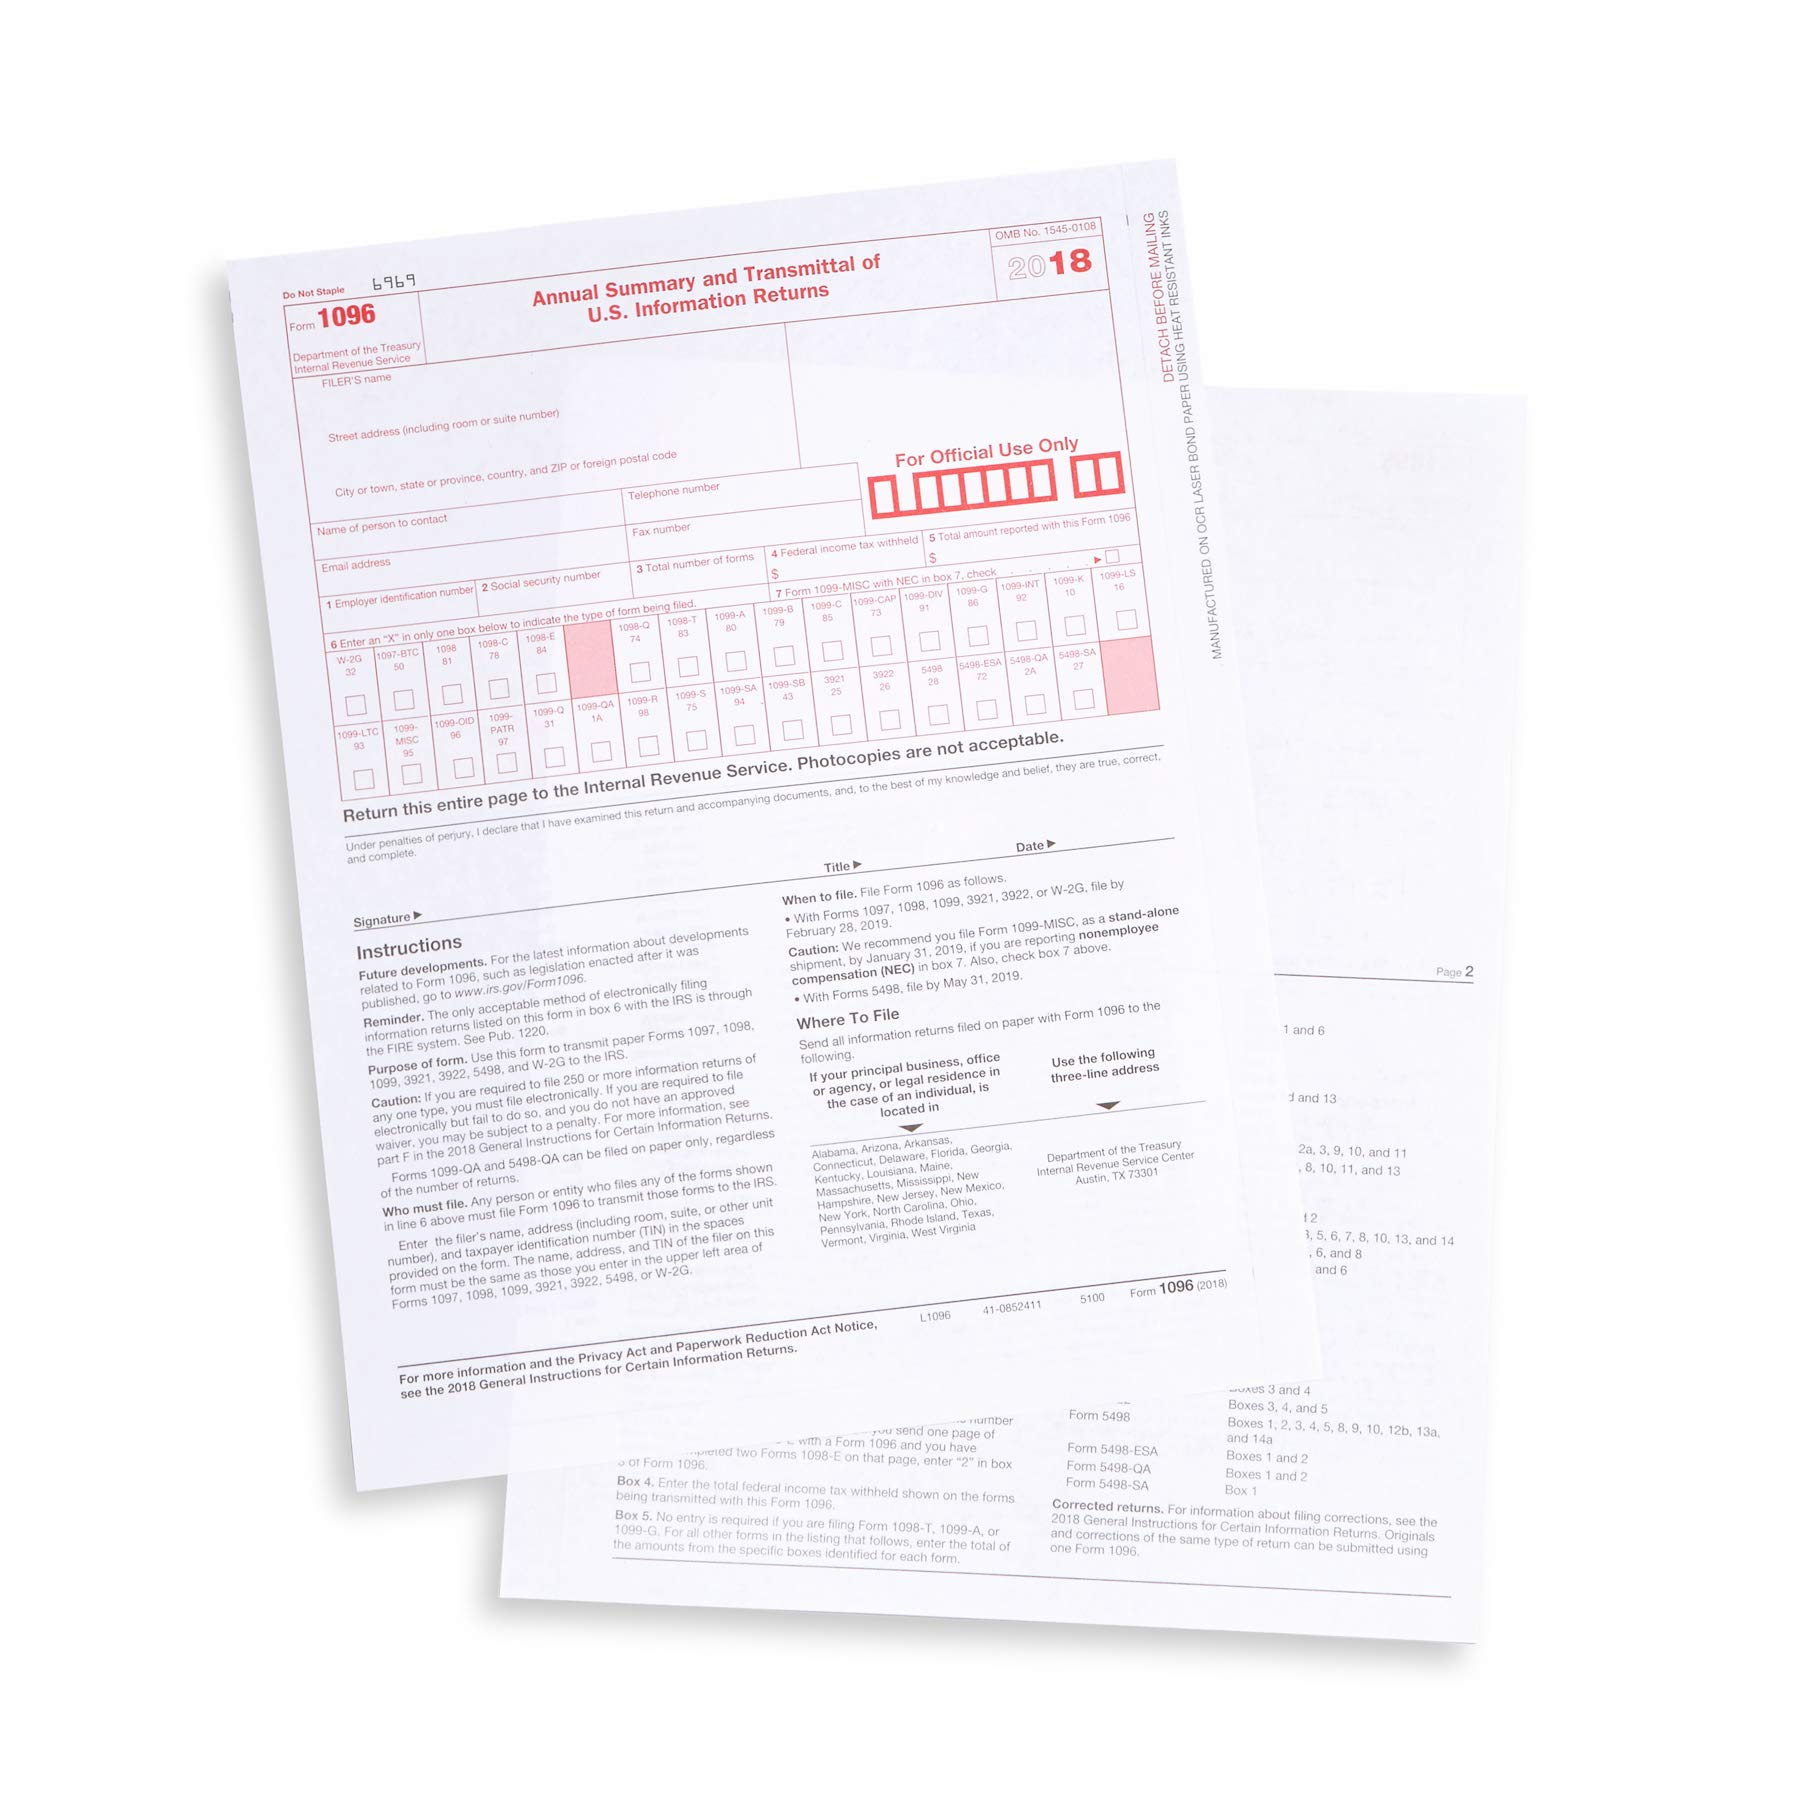 1096 Transmittal 2018 Tax Forms, 25 Pack of 1096 Summary Laser Forms Designed for QuickBooks and Accounting Software